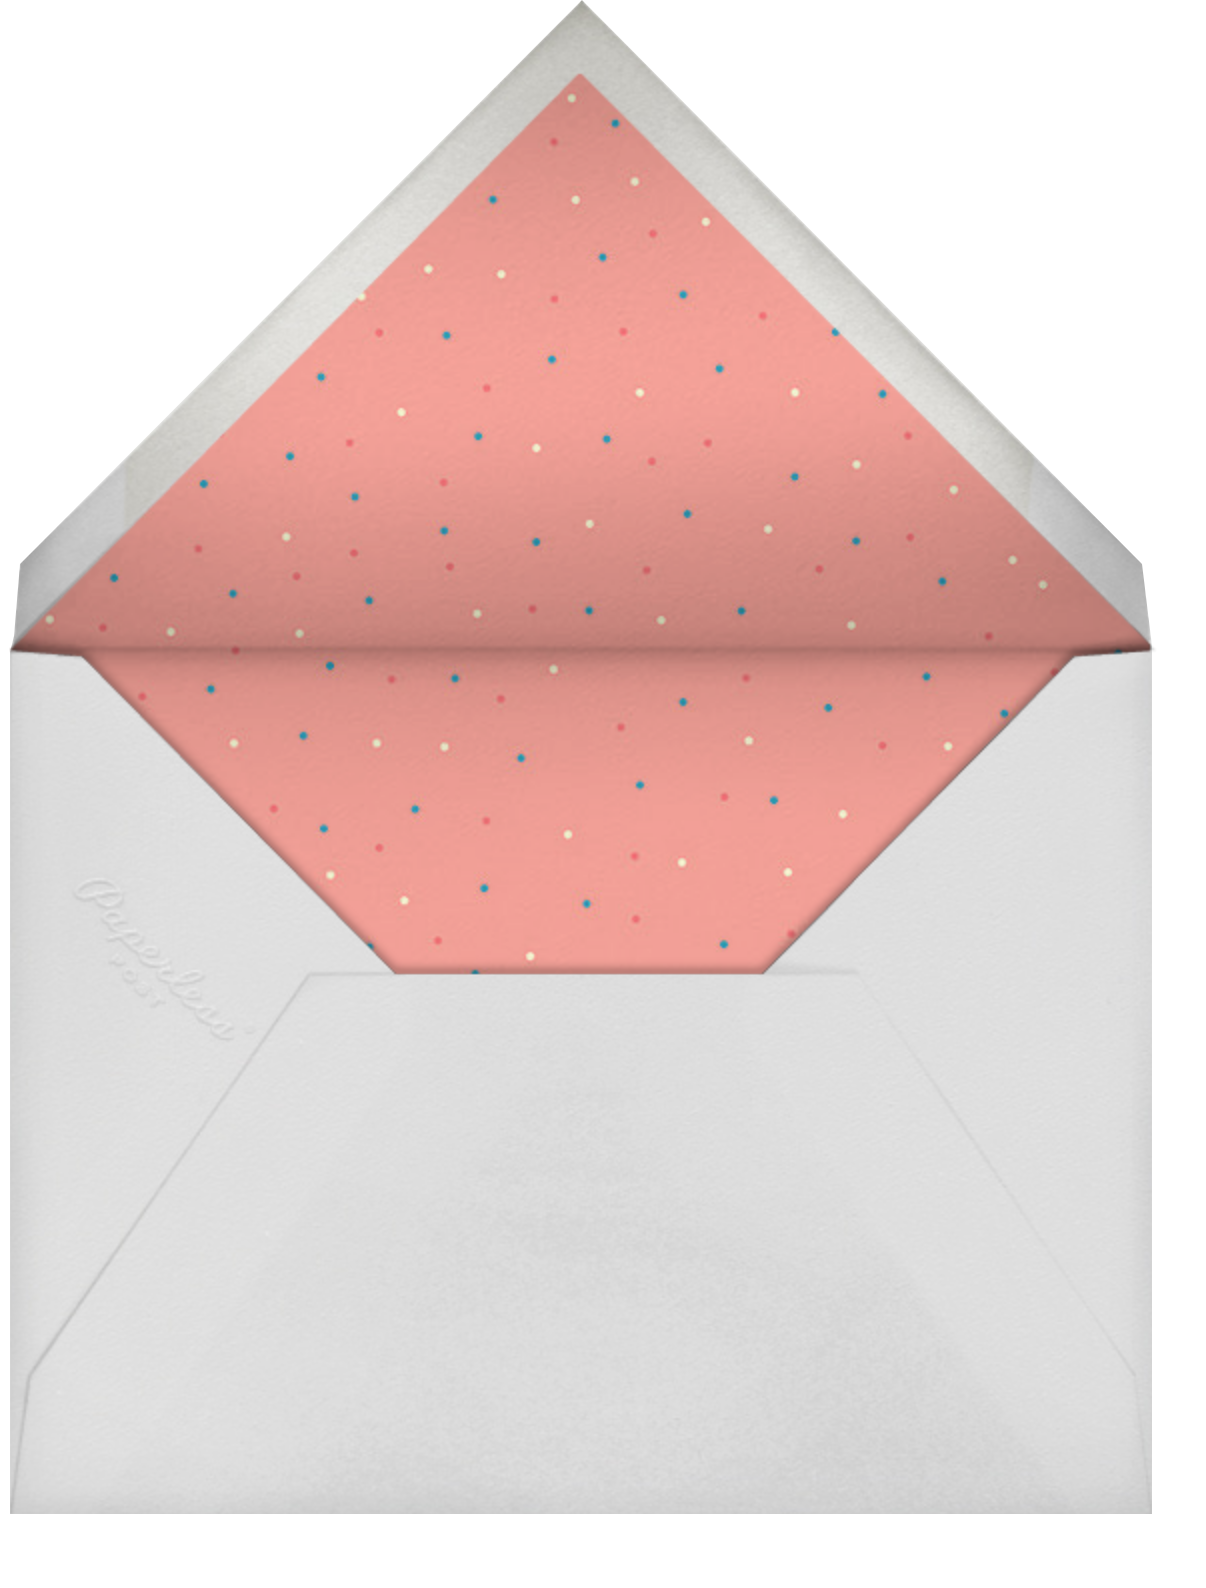 Let's Go to the Mall - Paperless Post - Election night - envelope back